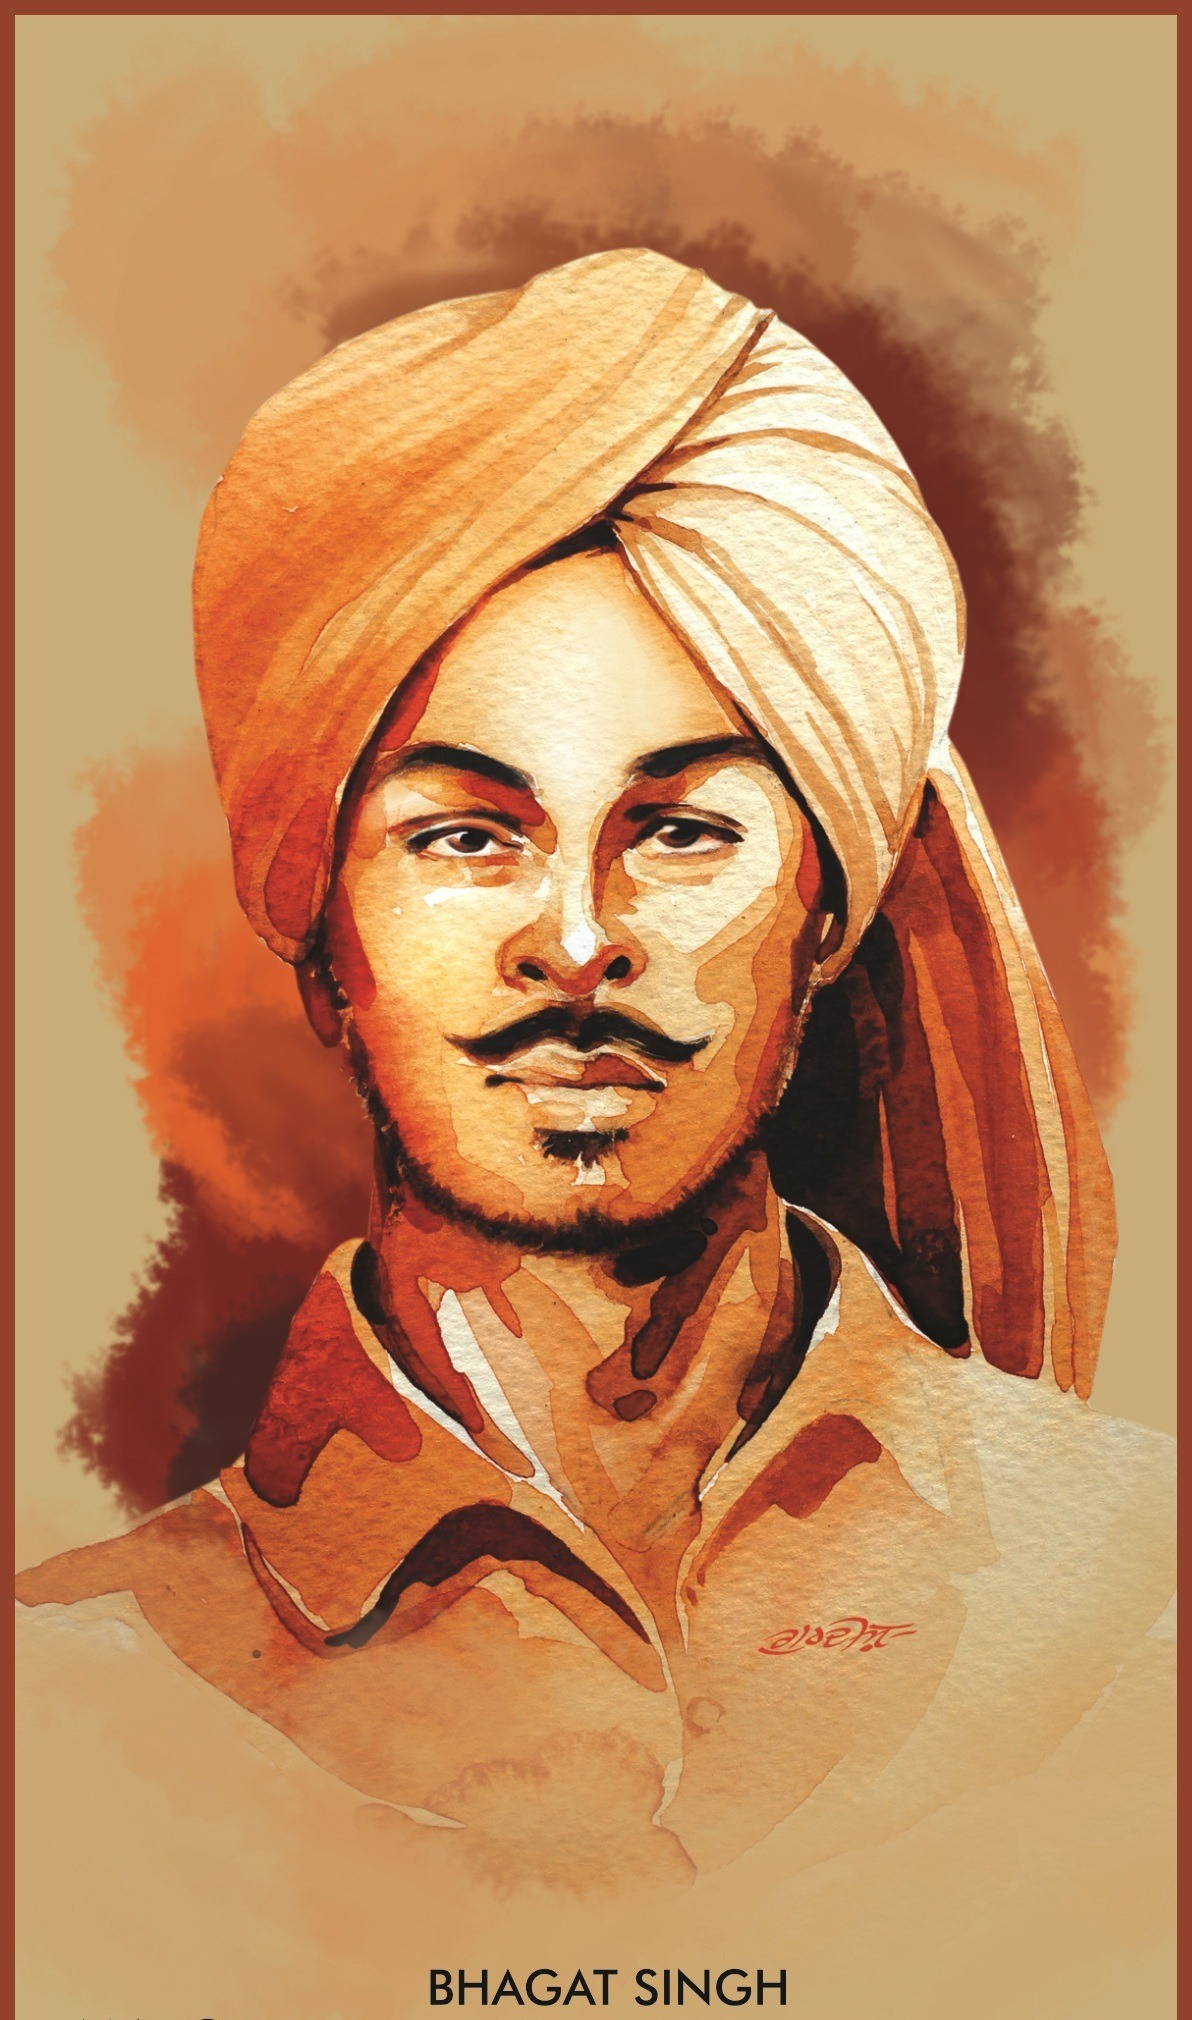 picture of bhagat singh is draw in image. name of him wirte down the photo in lack colour.